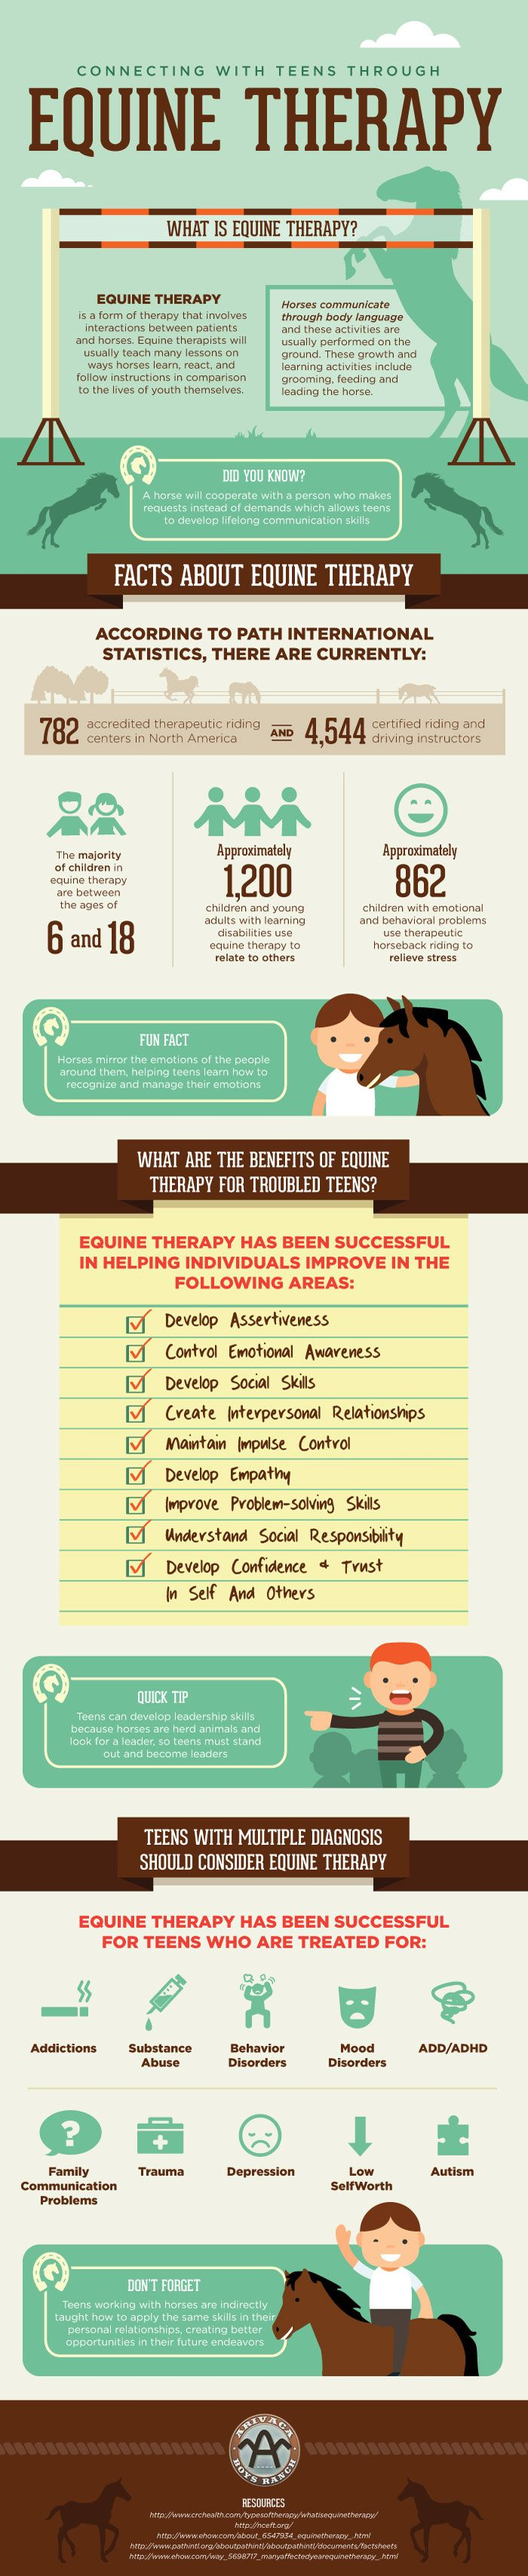 Connecting With Teens Through Equine Therapy - Do you fancy an infographic?  There are a lot of them online, but if you want your own please visit http://www.linfografico.com/prezzi/  Online girano molte infografiche, se ne vuoi realizzare una tutta tua visita http://www.linfografico.com/prezzi/